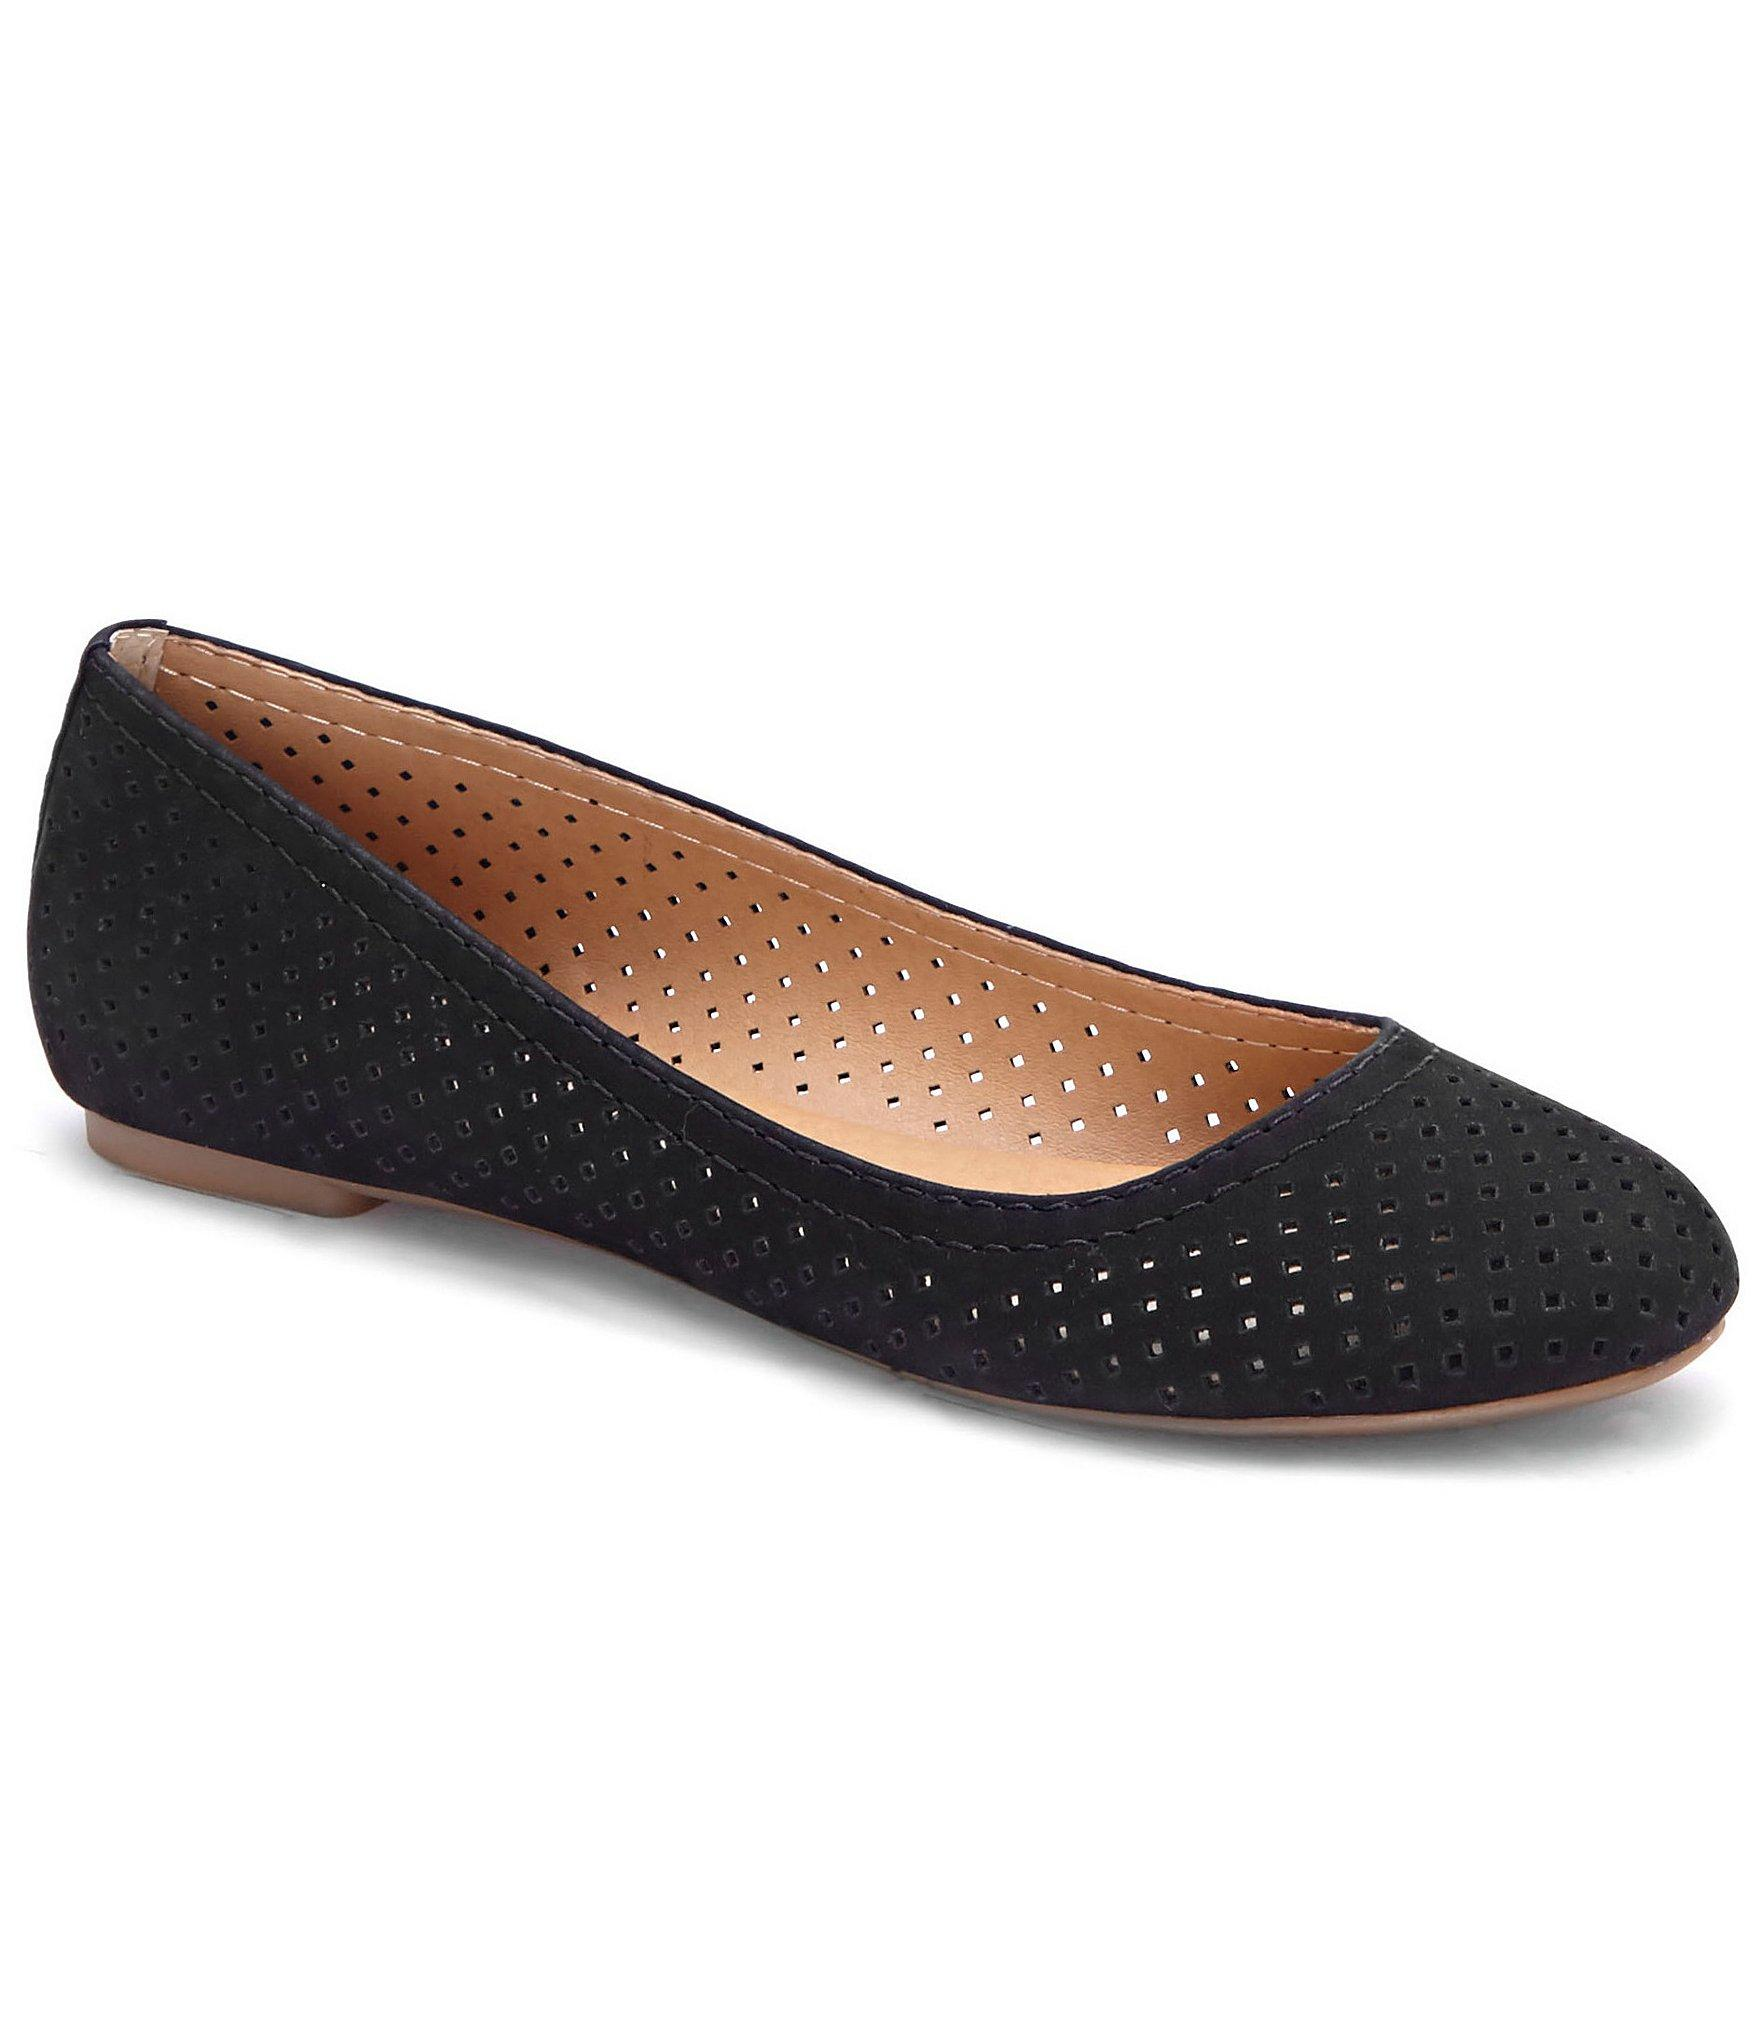 Perforated Slip On Shoes Mens